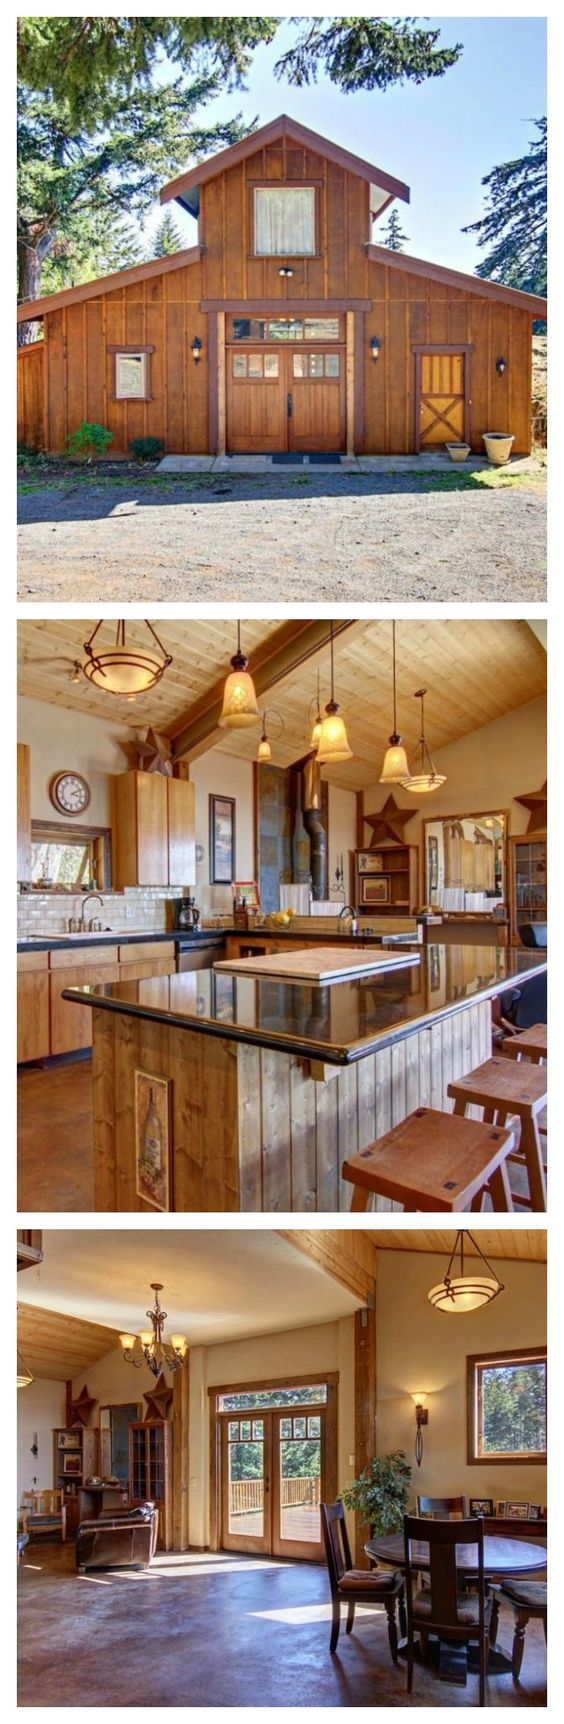 Vintage timber frame barn addition farmhouse exterior burlington - The Polished Pebble Modern Farmhouse Architecture Barns Garages Cabins Chalets Pinterest Farmhouse Architecture Modern Farmhouse And